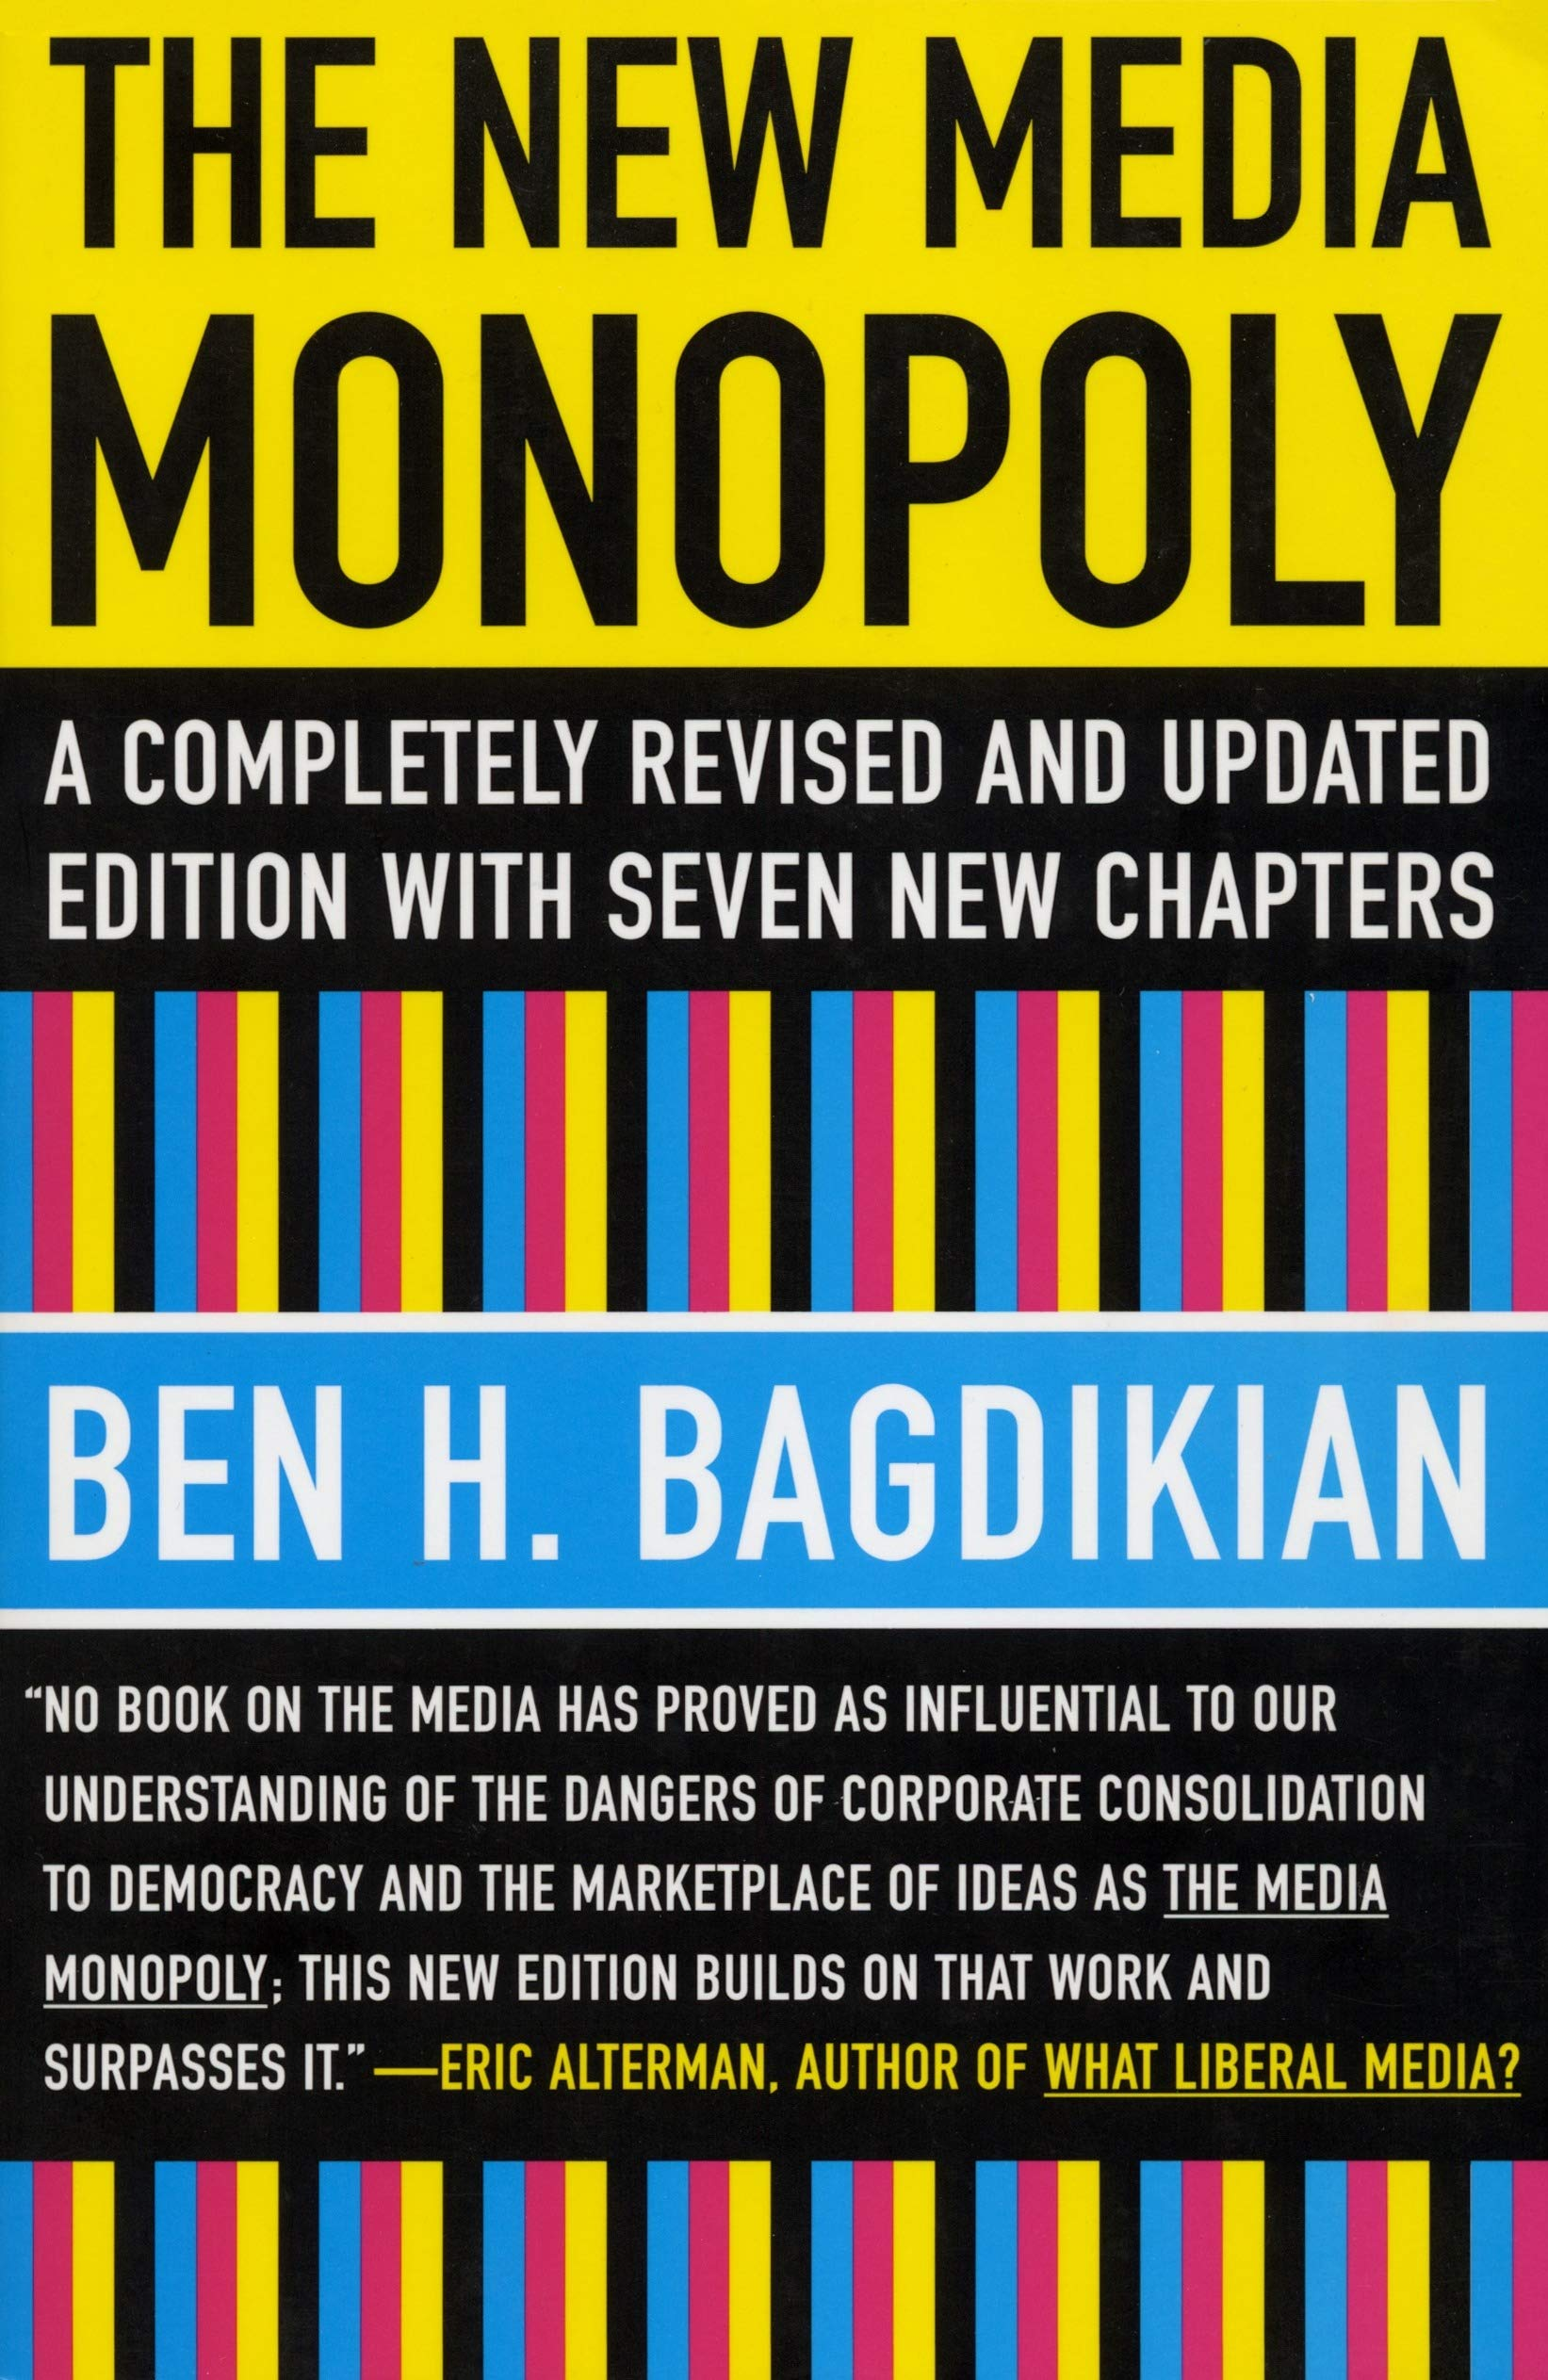 The New Media Monopoly: A Completely Revised and Updated Edition with Seven New Chapters: Amazon.es: Bagdikian, Ben H.: Libros en idiomas extranjeros